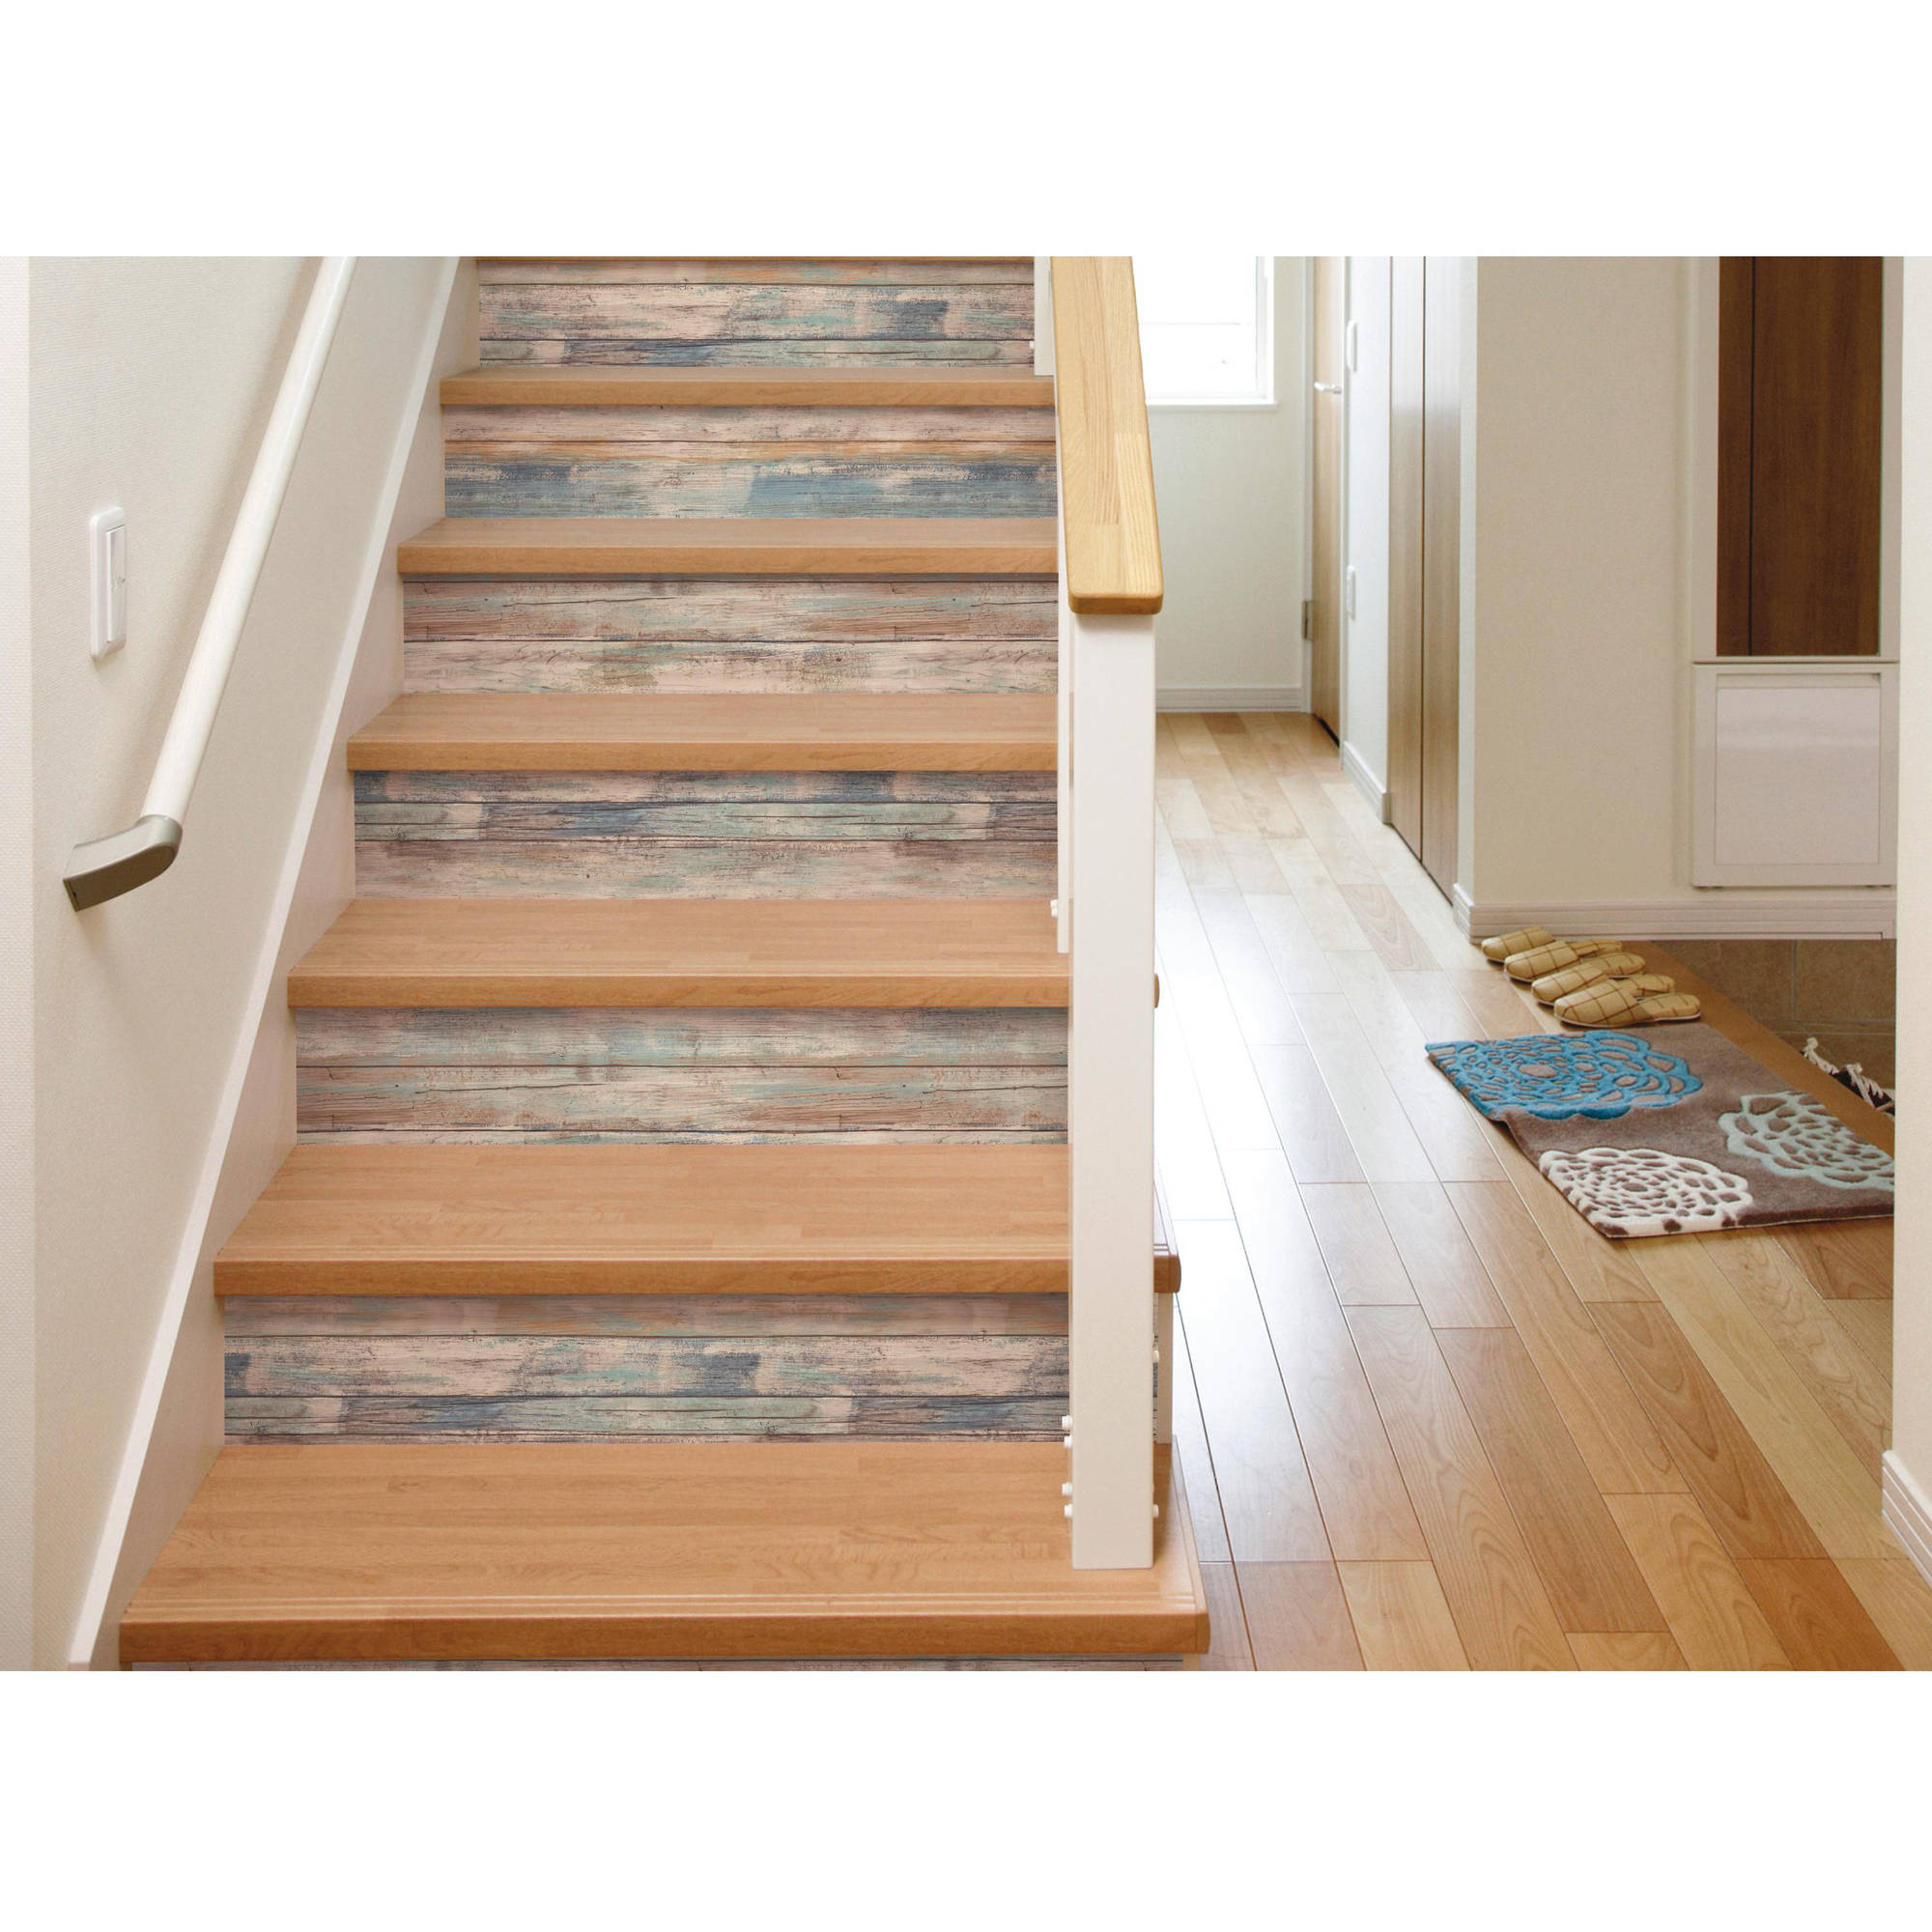 hardwood supply oak why floor wood white distressed reclaimed city floors flooring choose blog